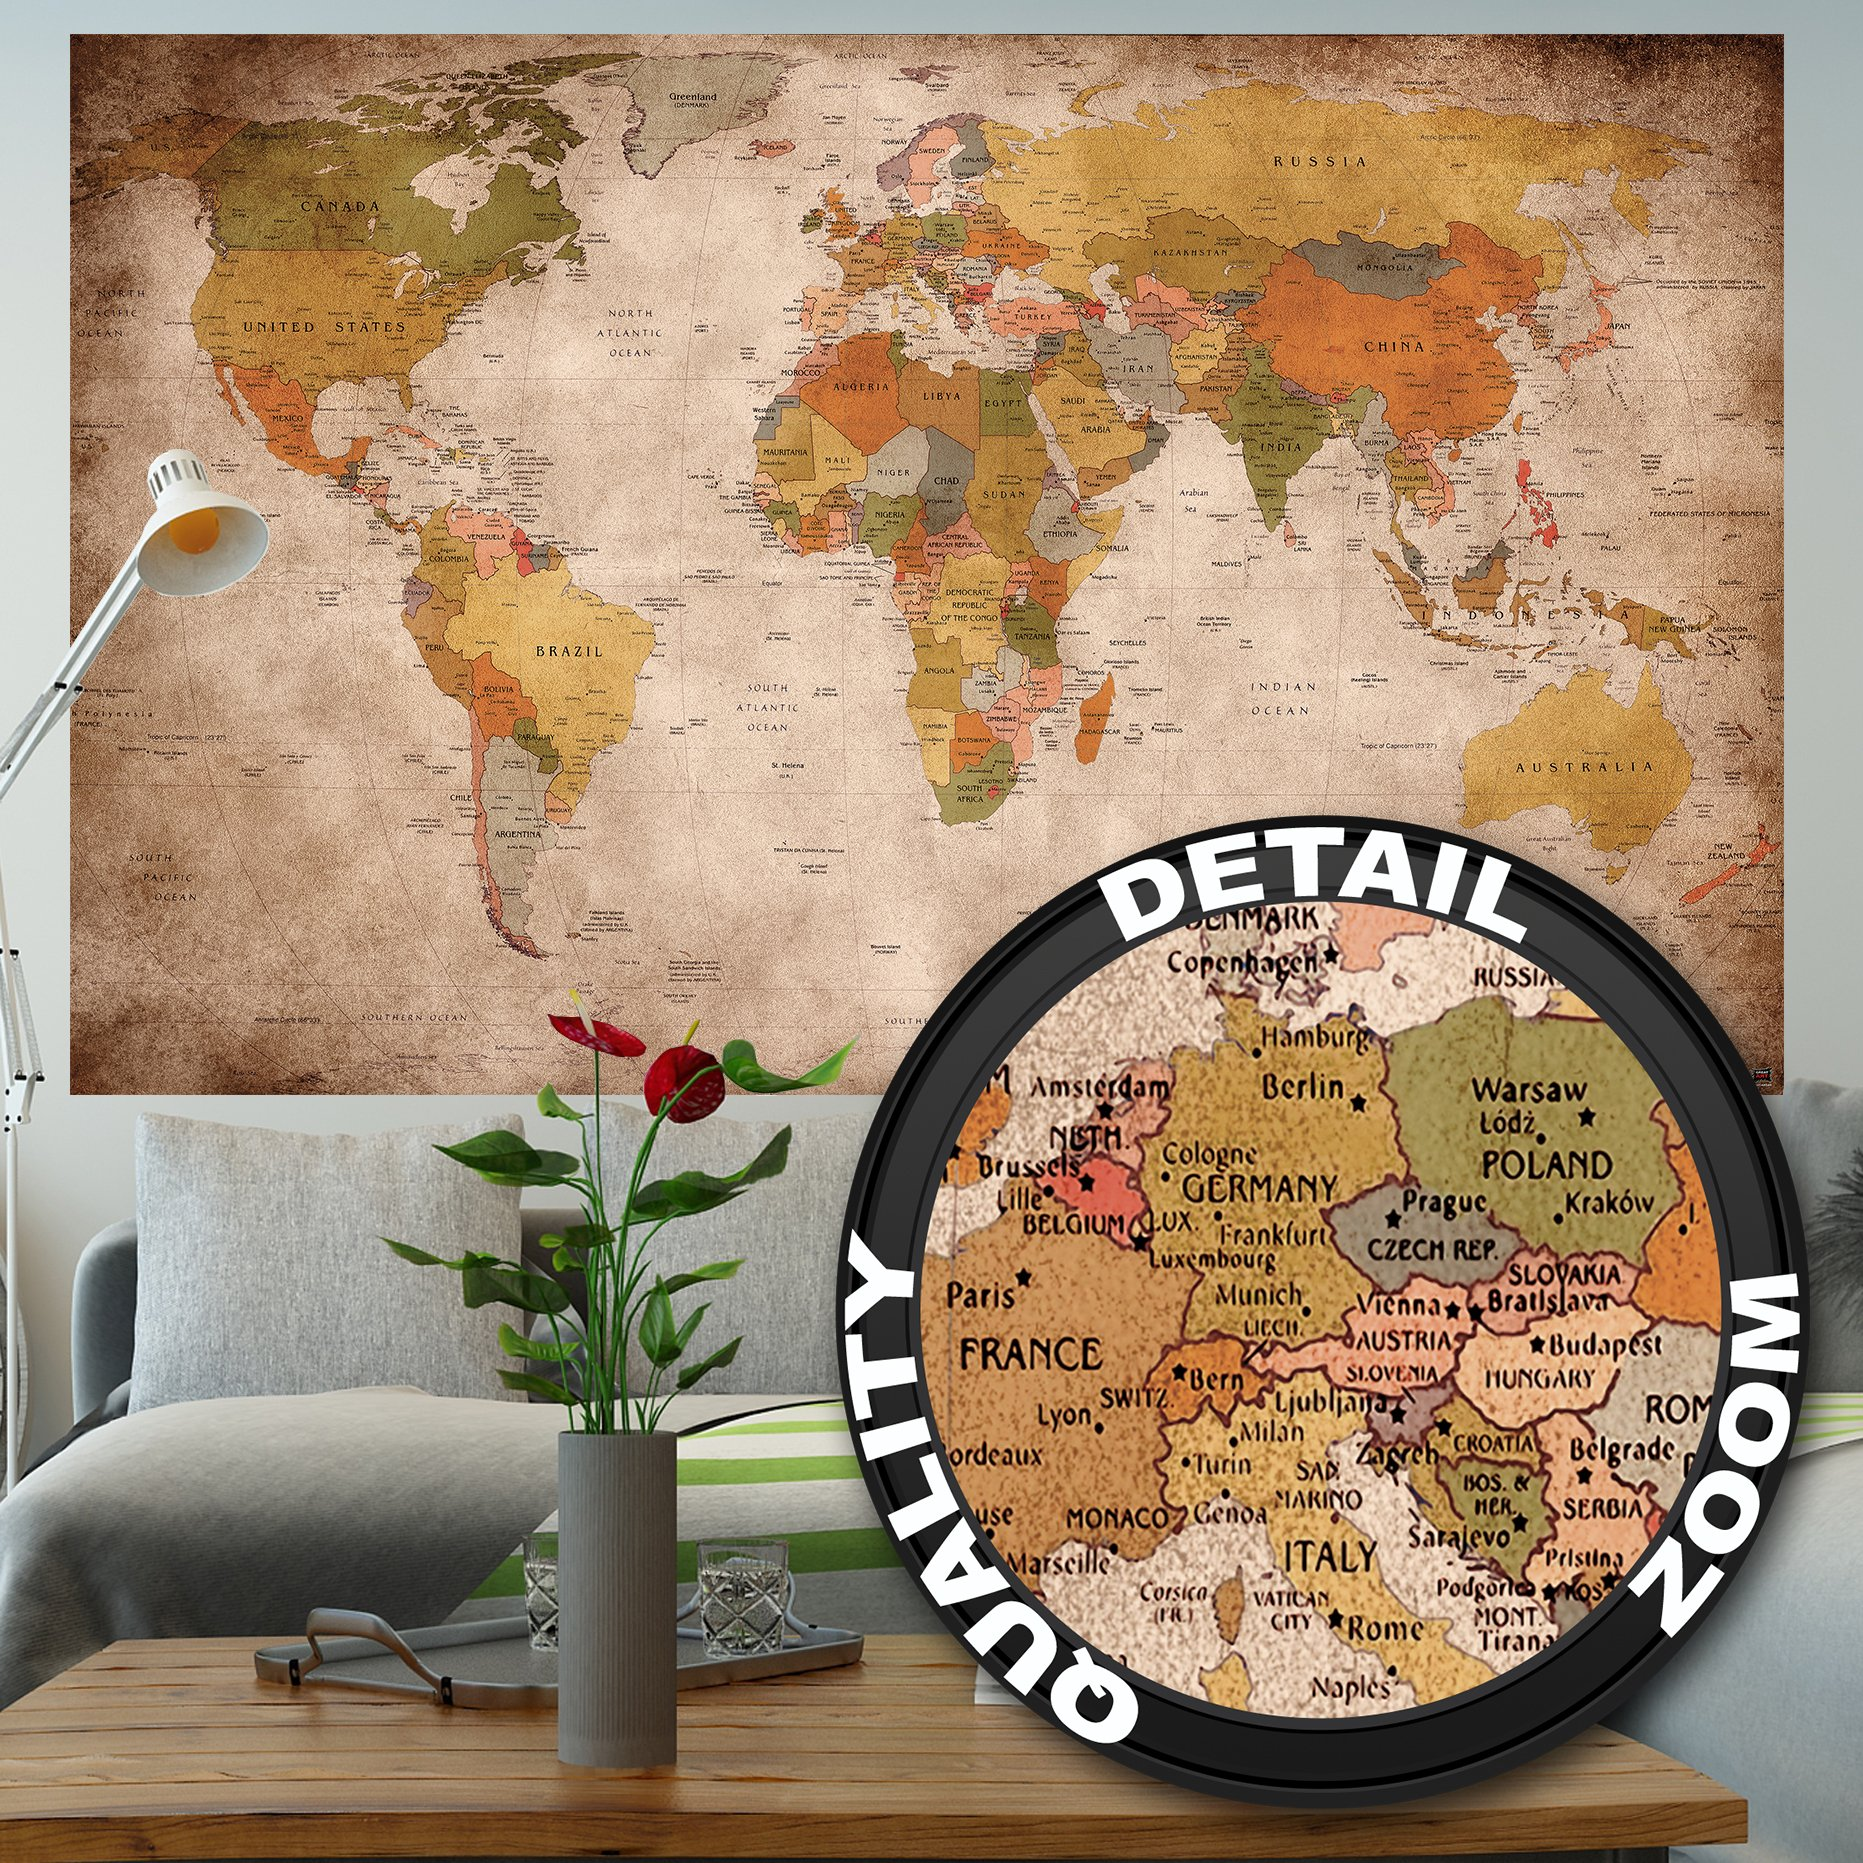 Buy great art xxl poster world map photo wallpaper vintage retro great art xxl poster world map photo wallpaper vintage retro motif xxl world map mural wall art decoration 55 inch x 394 inch gumiabroncs Choice Image